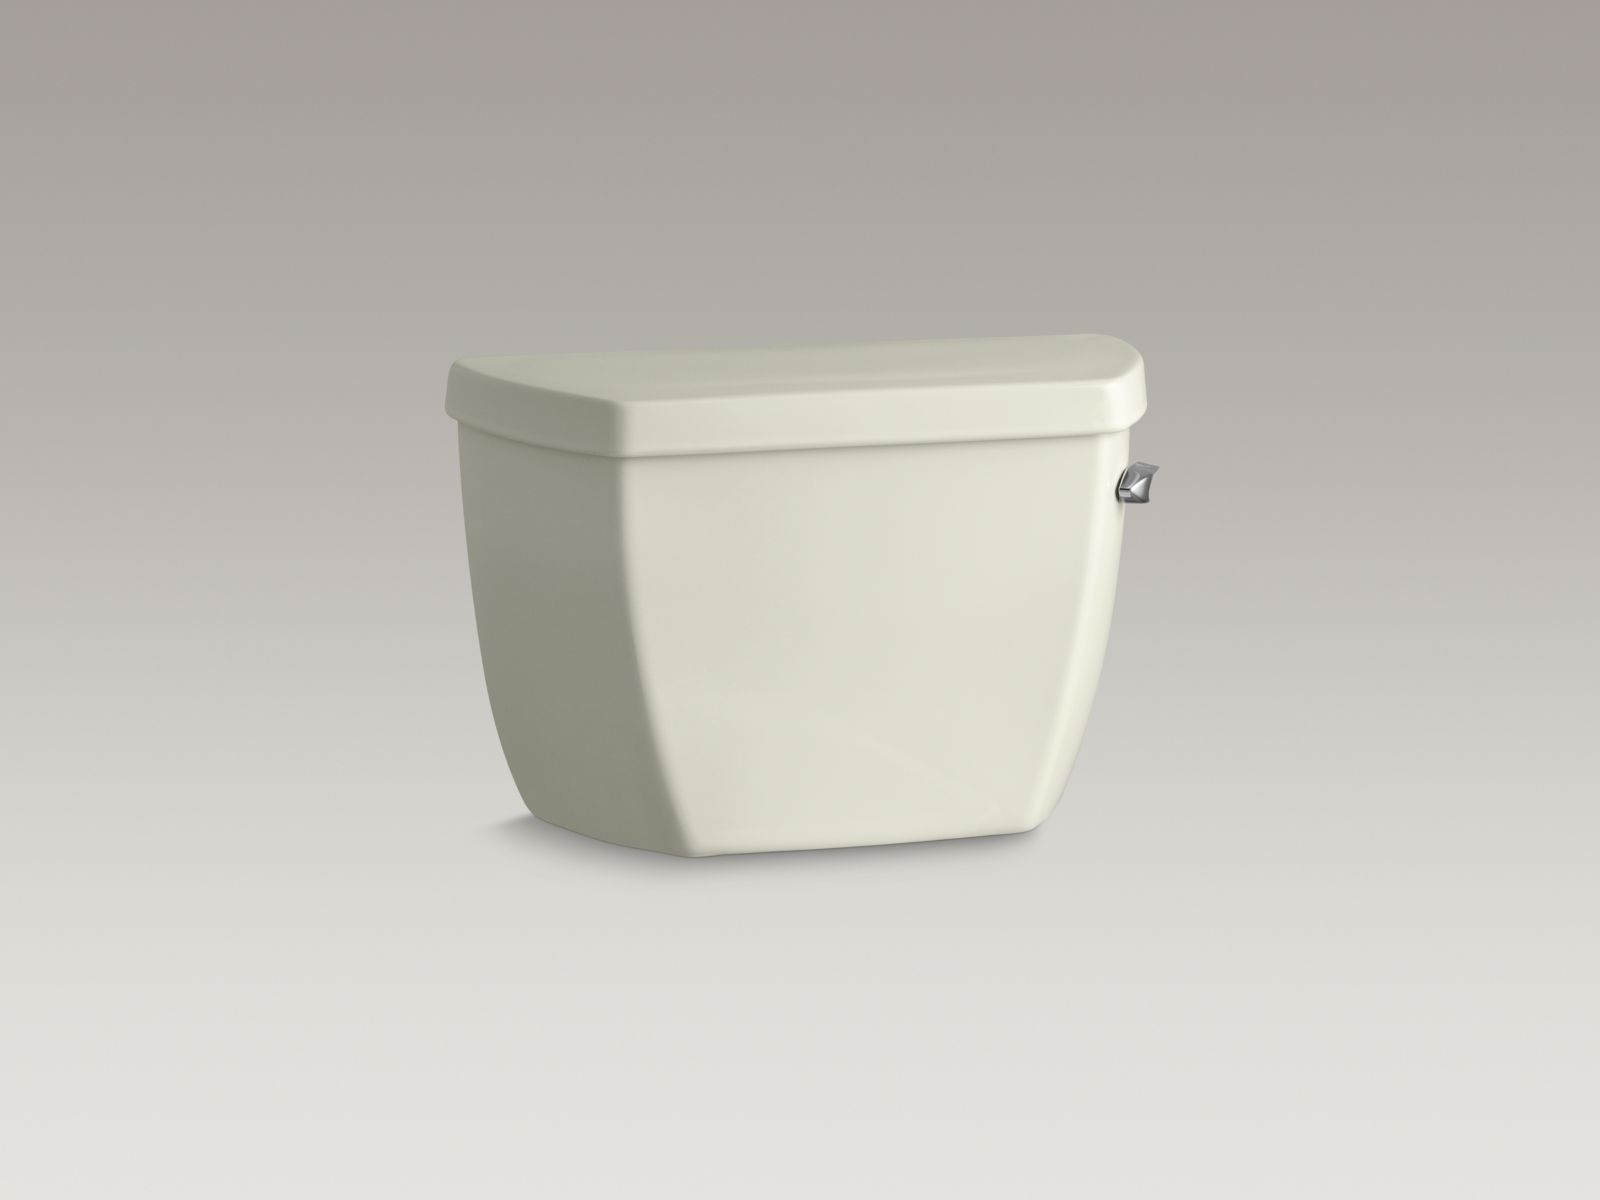 Kohler K-4645-RA-96 Highline Classic 1.6 GPF Pressure Lite Toilet Tank with Right-hand Trip Lever Biscuit